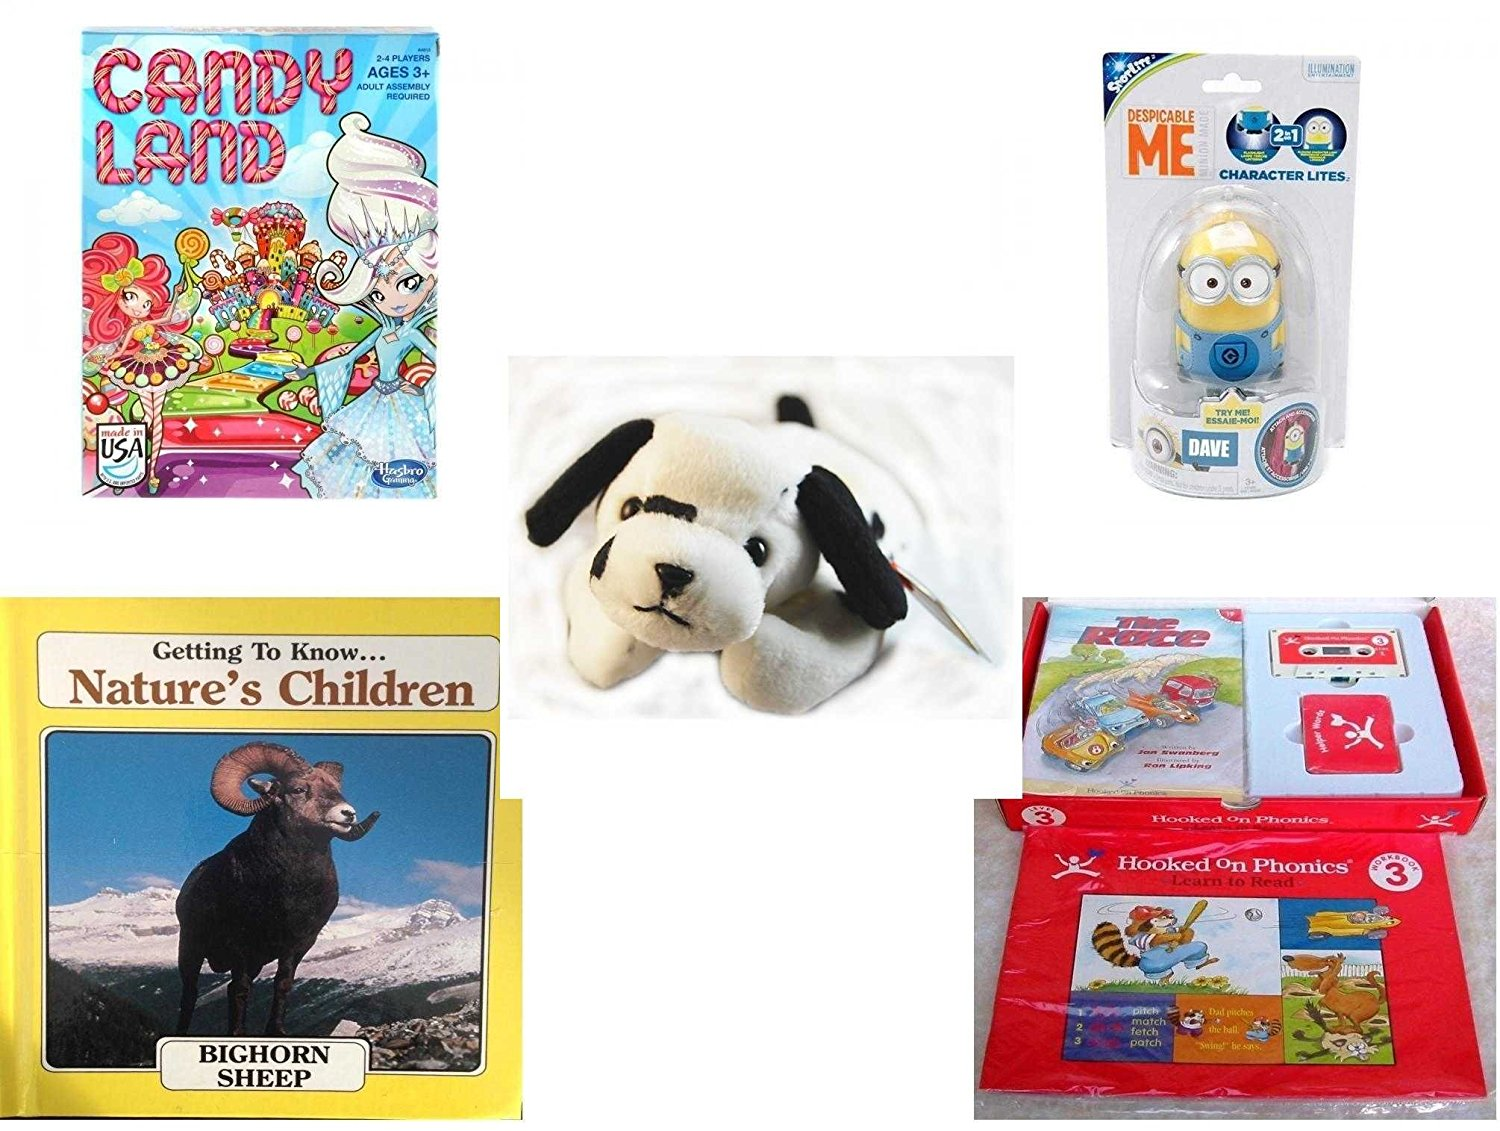 Children's Gift Bundle - Ages 3-5 [5 Piece] - Candy Land Game - Tech4Kids Despicable Me Character Lite Dave Toy - Ty Beanie Babies - Dotty the Dalmatian Dog - Getting to Know Nature's Children: Bigh